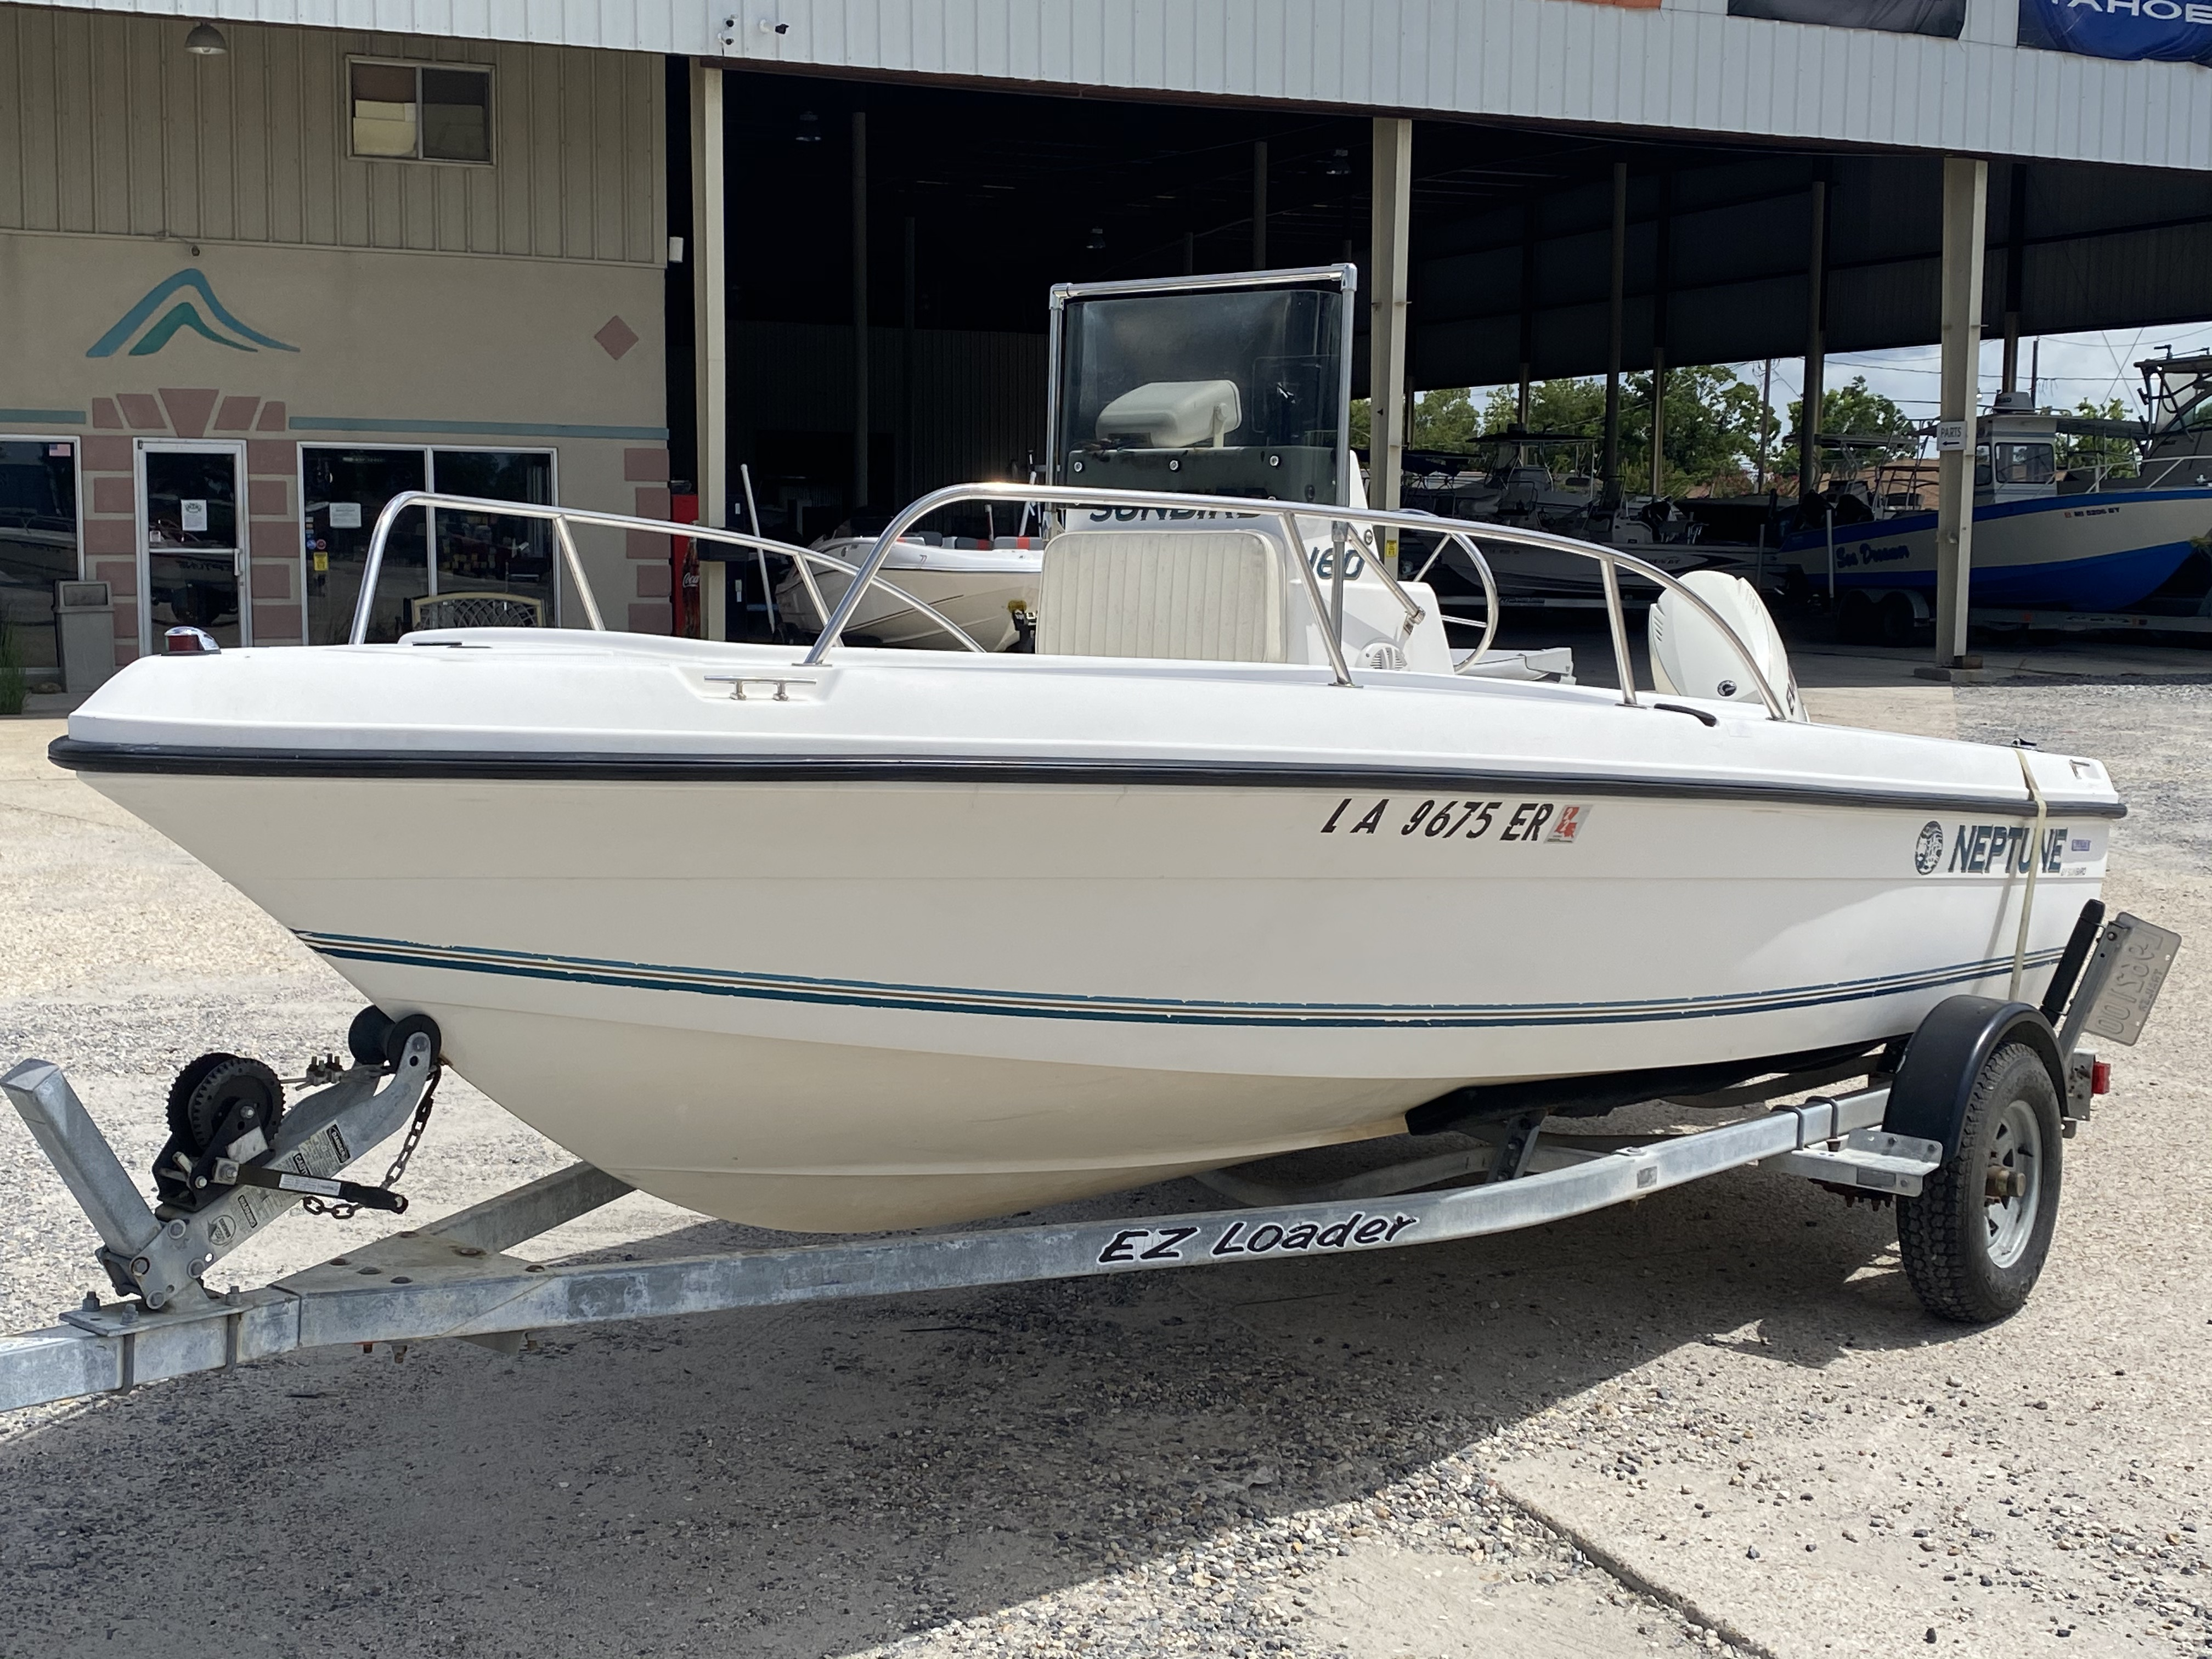 1996 Sunbird boat for sale, model of the boat is Neptune 160 & Image # 9 of 14